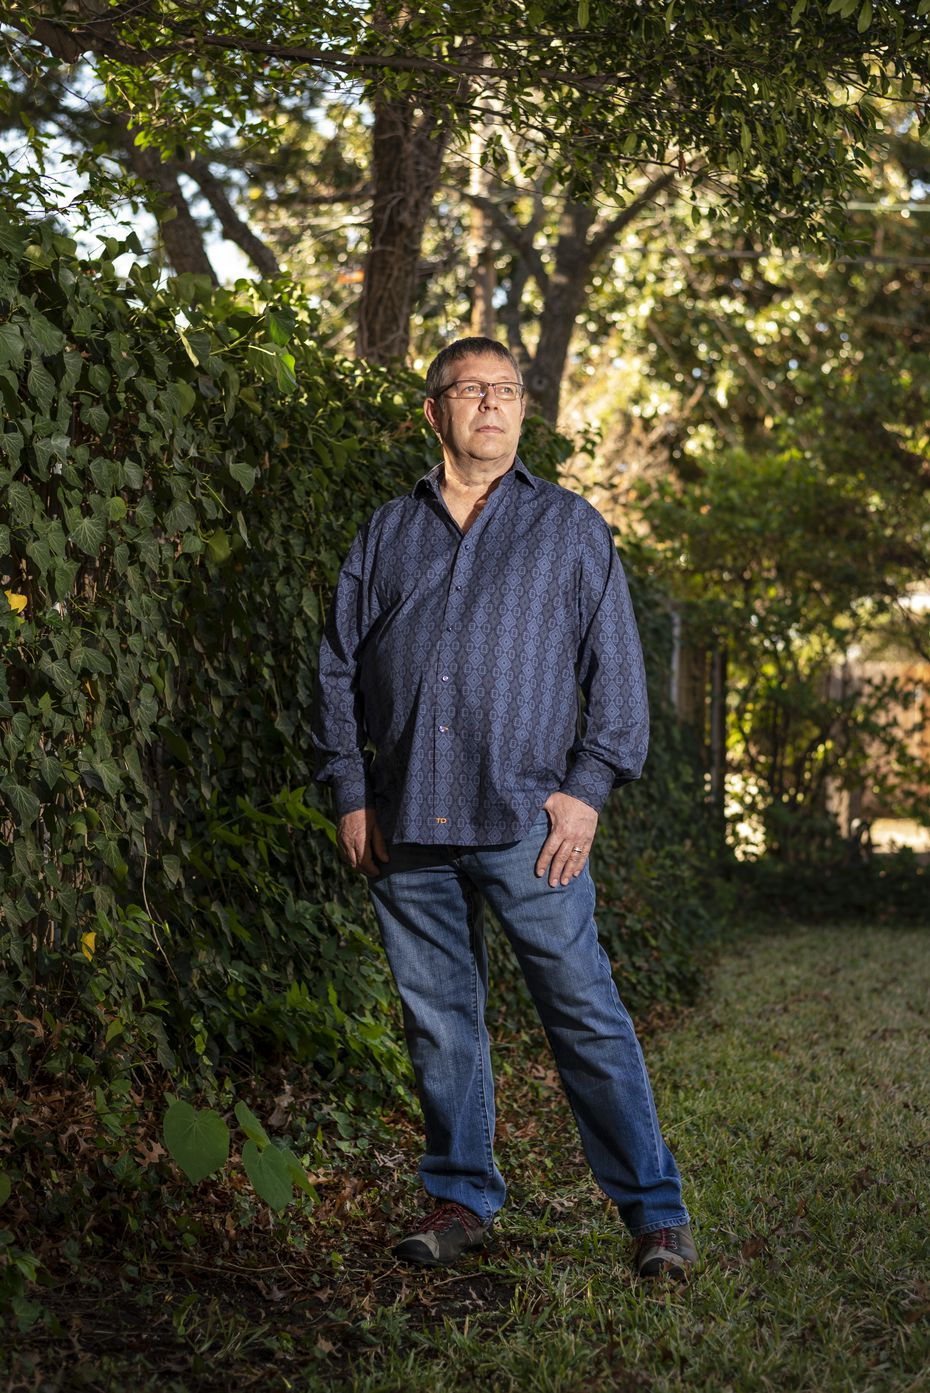 """Scenic artist Robert Winn, 62, outside his home in Dallas, on  Dec. 10, 2020. Winn has worked on numerous Dallas theatrical productions and some of Hollywood's biggest films, including the 2020 sensation, """"Ma Rainey's Black Bottom."""" Winn is also largely responsible for creating Dealey Plaza to look like it did in 1963 for Oliver Stone's """"JFK."""""""